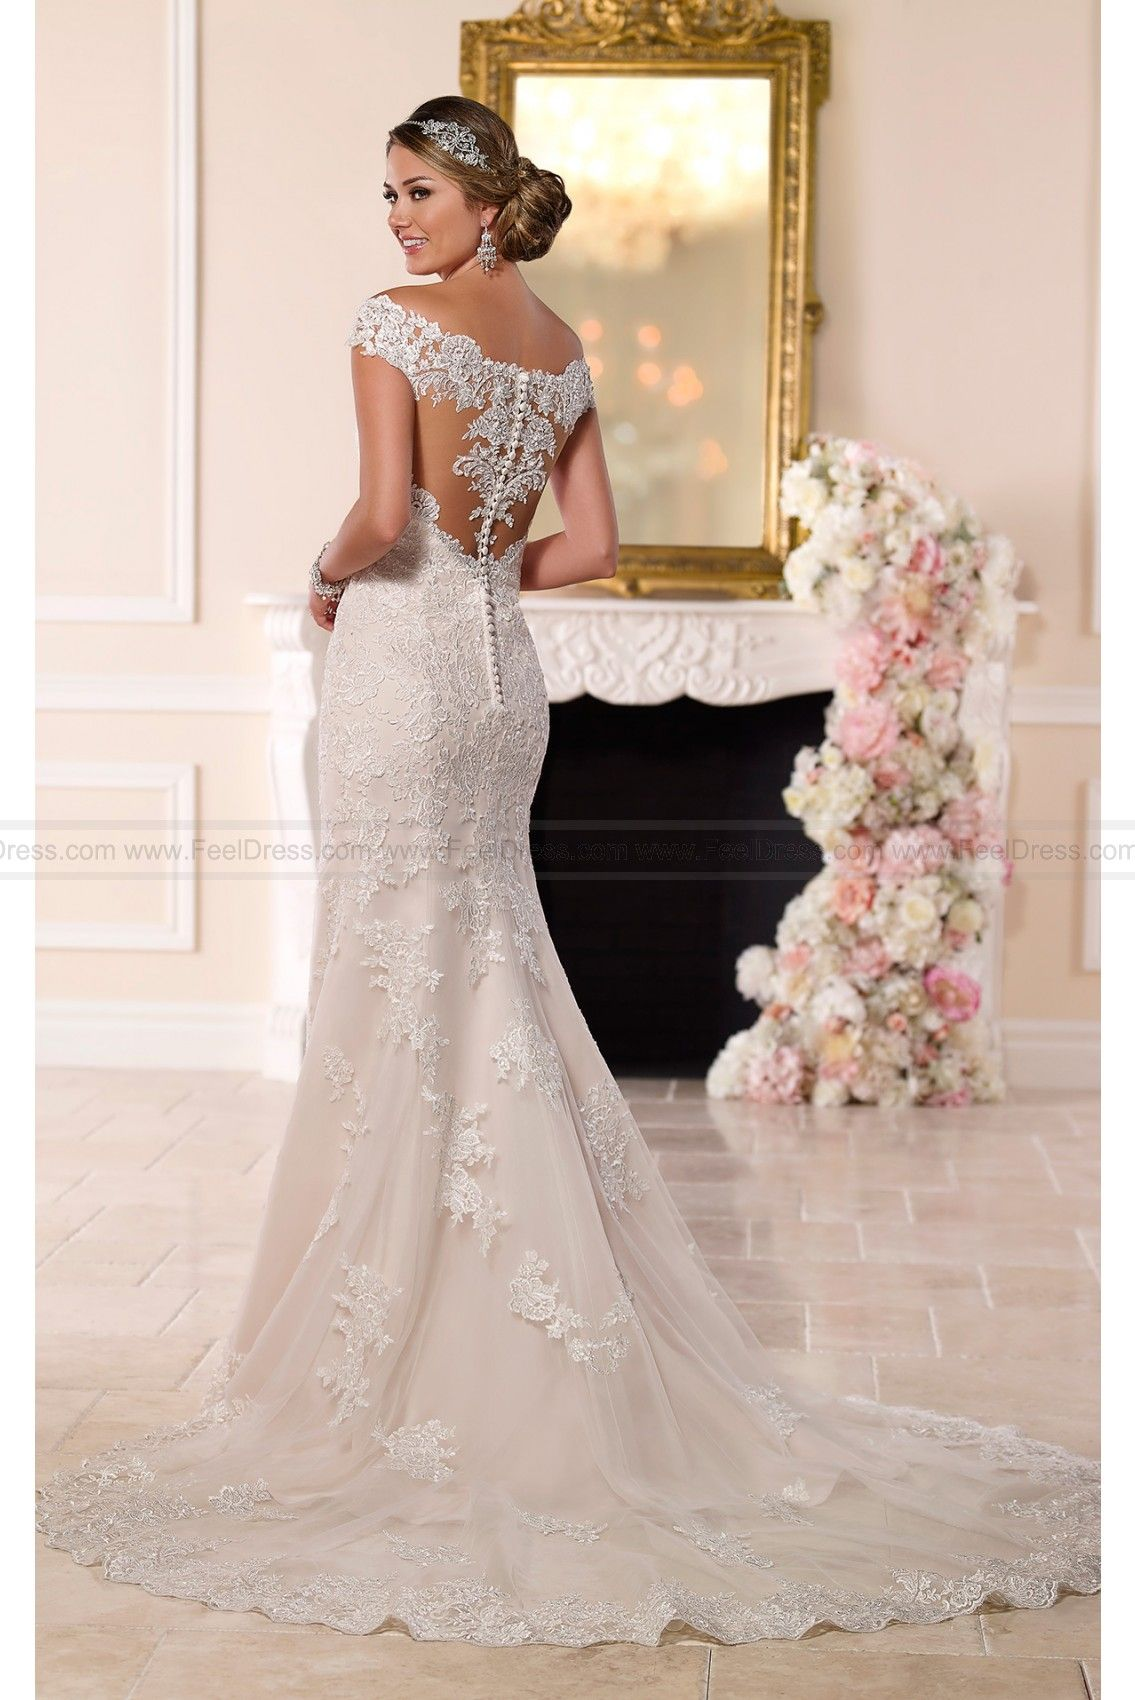 Stella york wedding dress style 6249 on sale at reasonable prices stella york wedding dress style 6249 on sale at reasonable prices buy cheap stella york ombrellifo Images